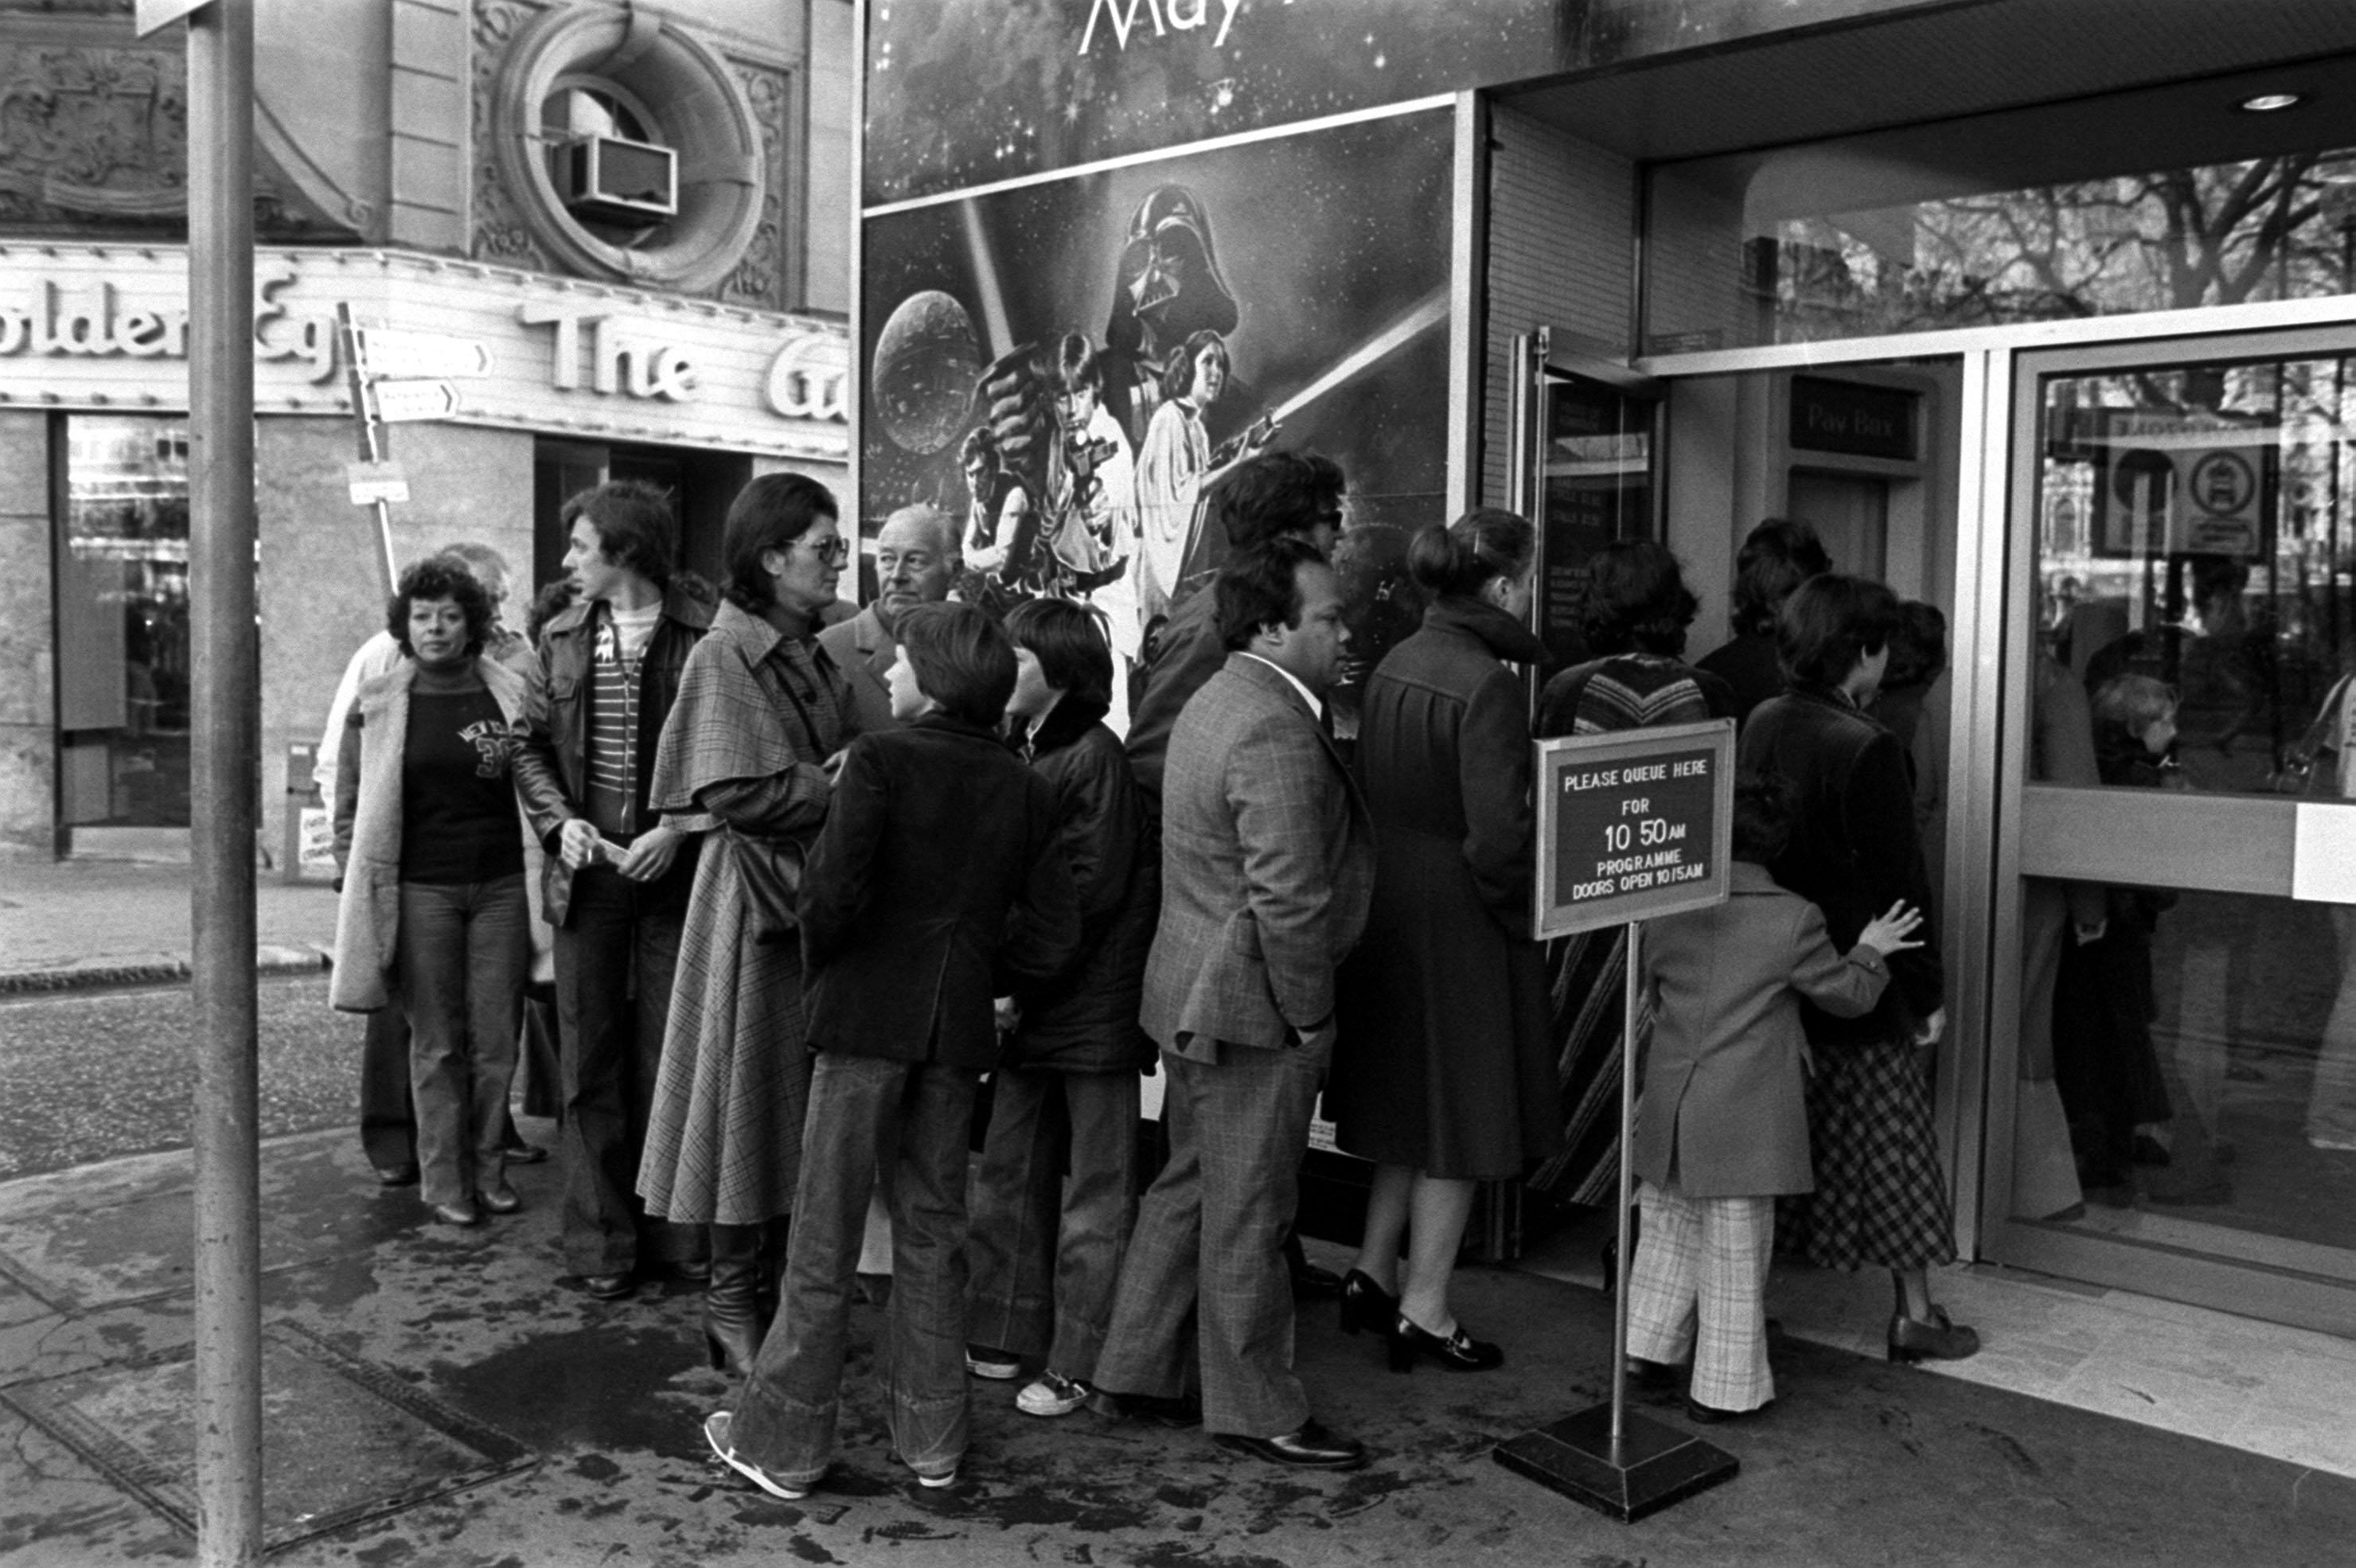 Waiting In Line To See Star Wars: 1977-2000 - Flashbak